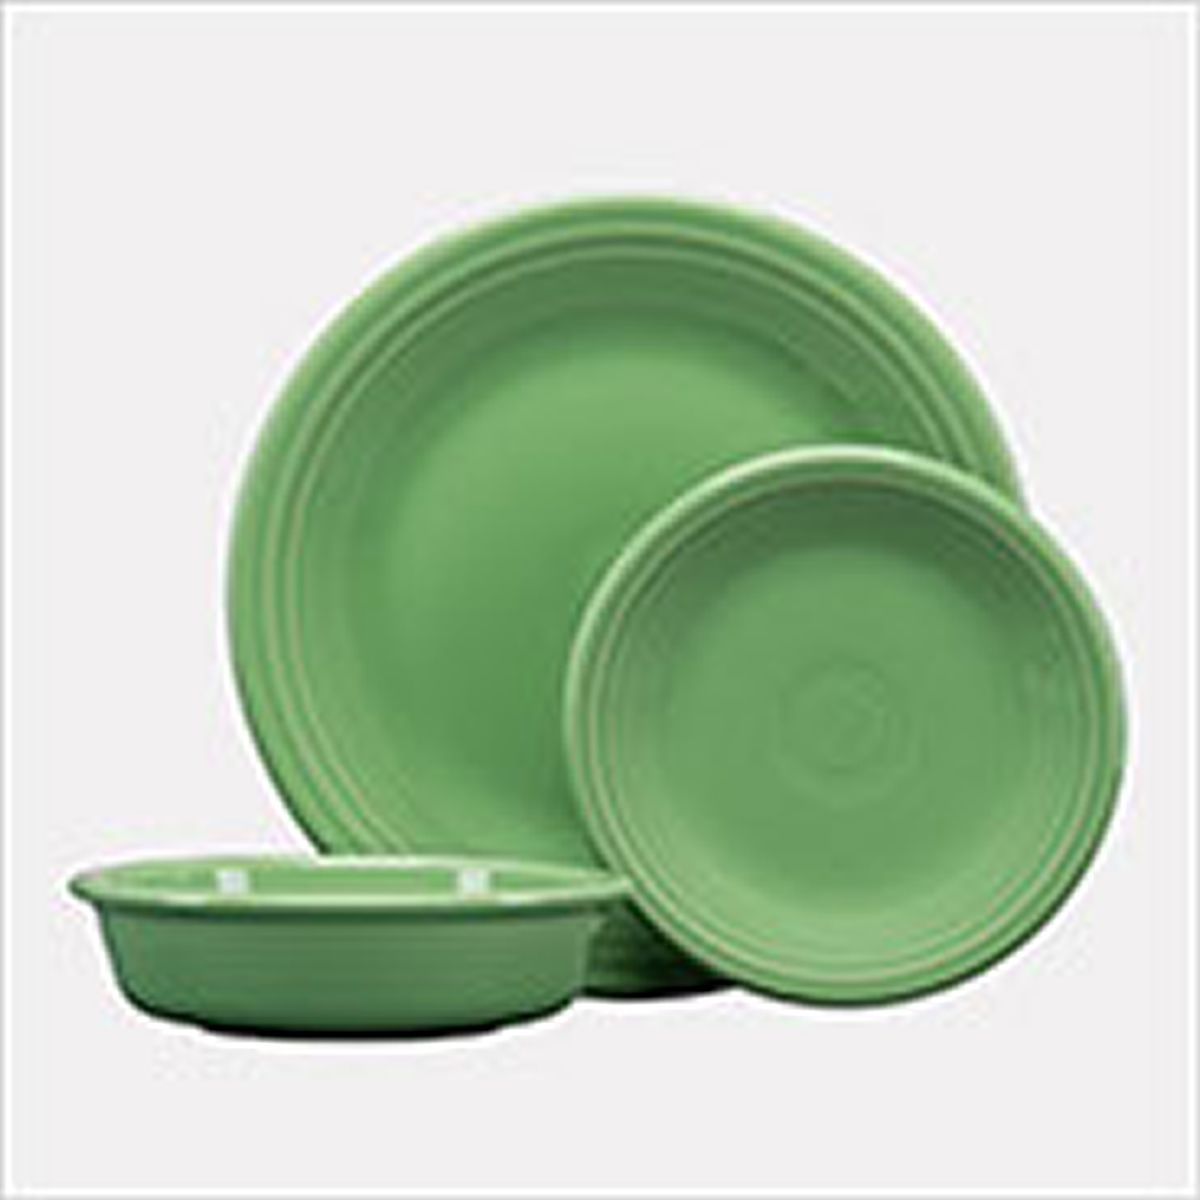 Fiestaware Dishes, Glasses, Mugs & More - Macy's